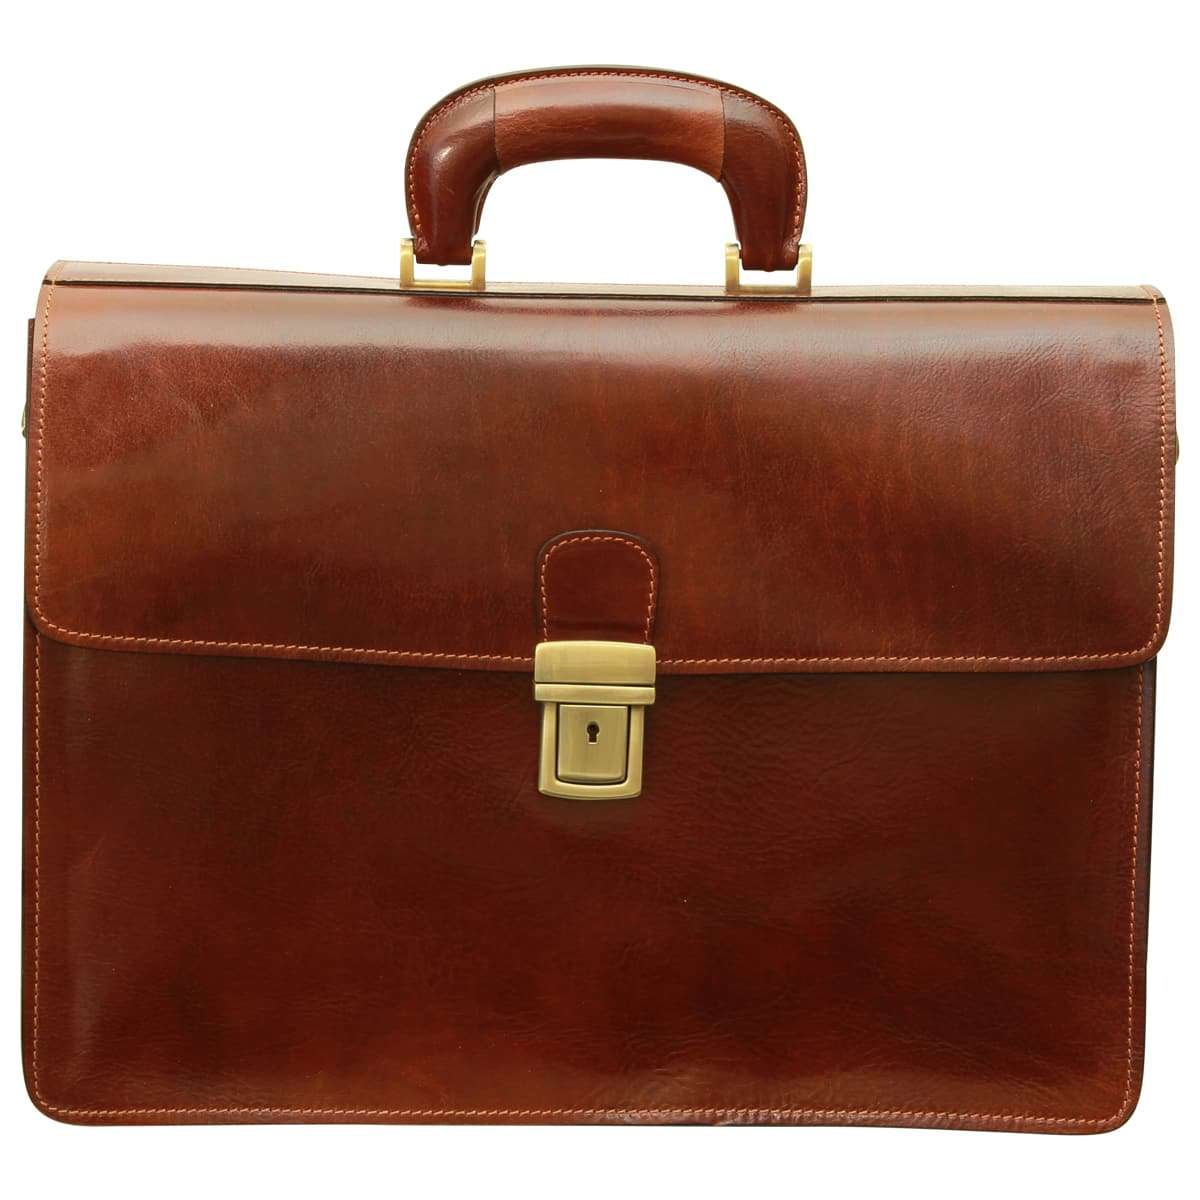 Leather Briefcase with secure clip closure - Brown | 077905MA UK | Old Angler Firenze